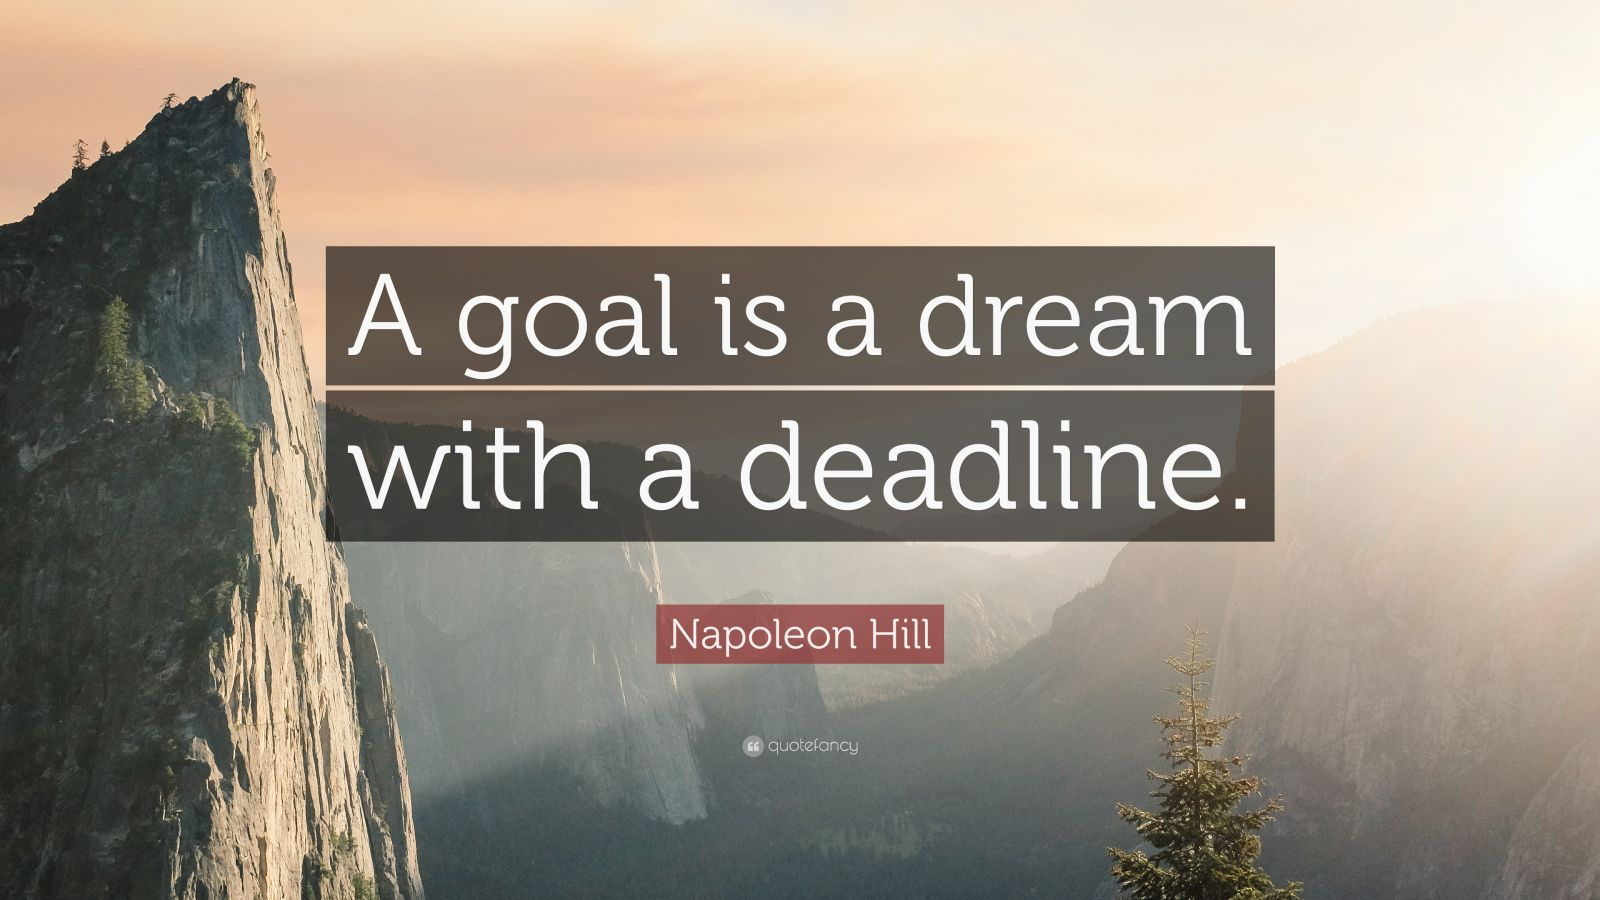 Inspirational Quotes About Life Wallpaper Napoleon Hill Quote A Goal Is A Dream With A Deadline